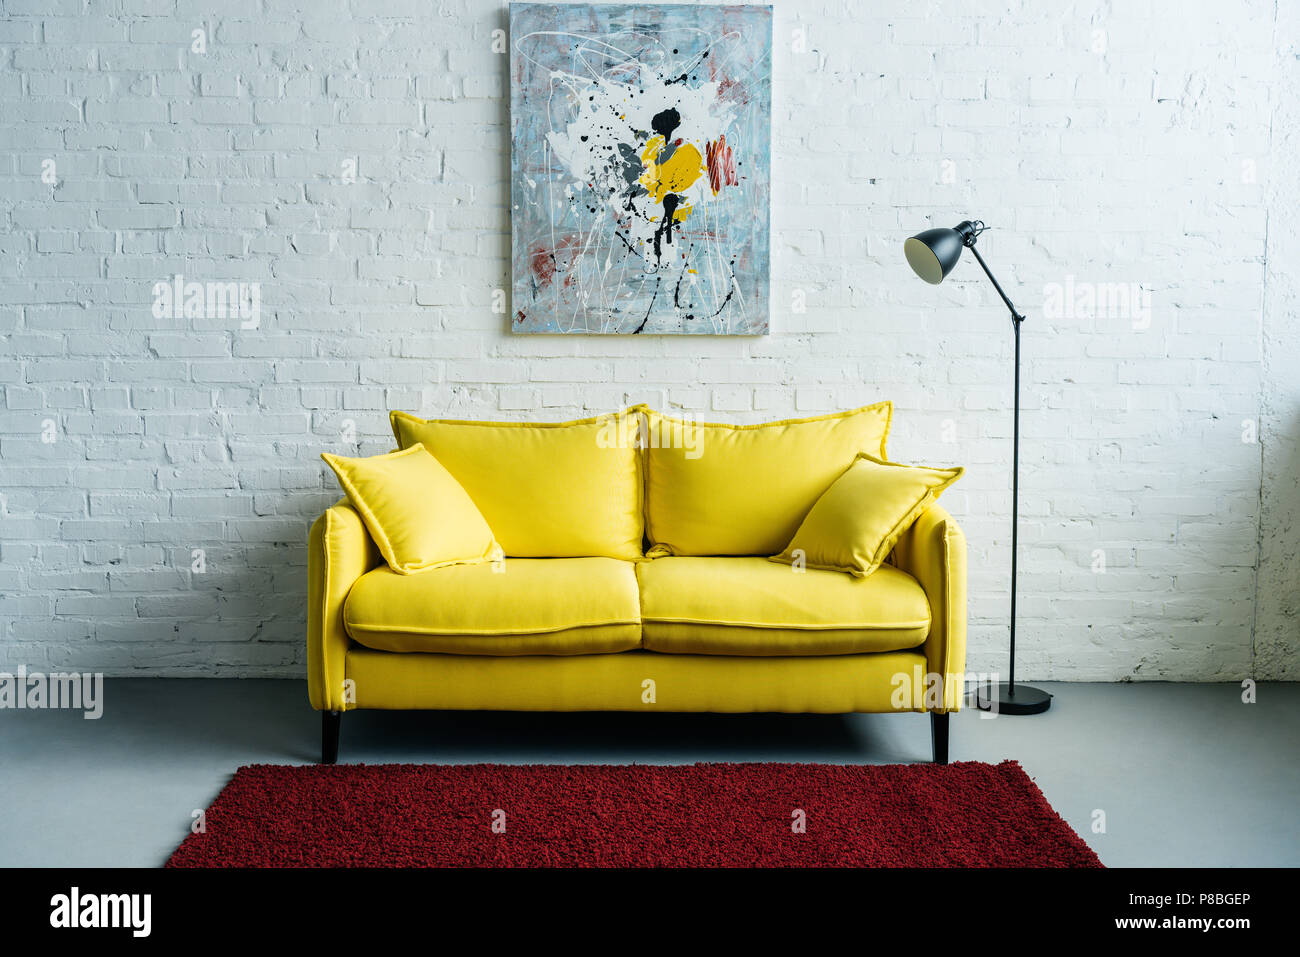 Interior Of Cozy Living Room With Painting On Wall, Sofa And Floor Lamp  Beside